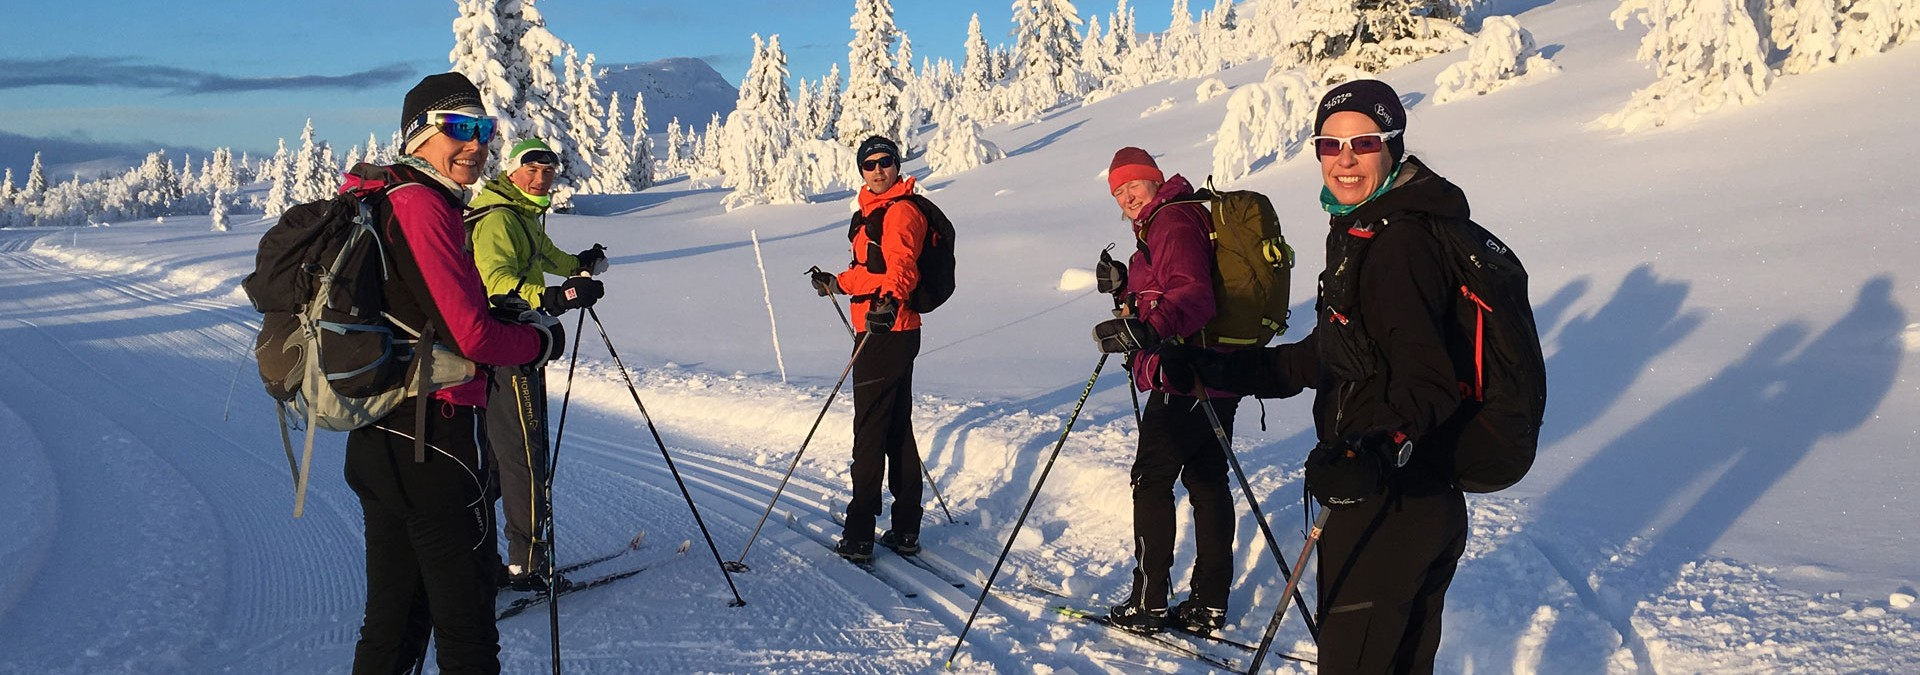 Nordic in Norway: Venabu - Taking a moment during another quality ski day in the frozen landscape